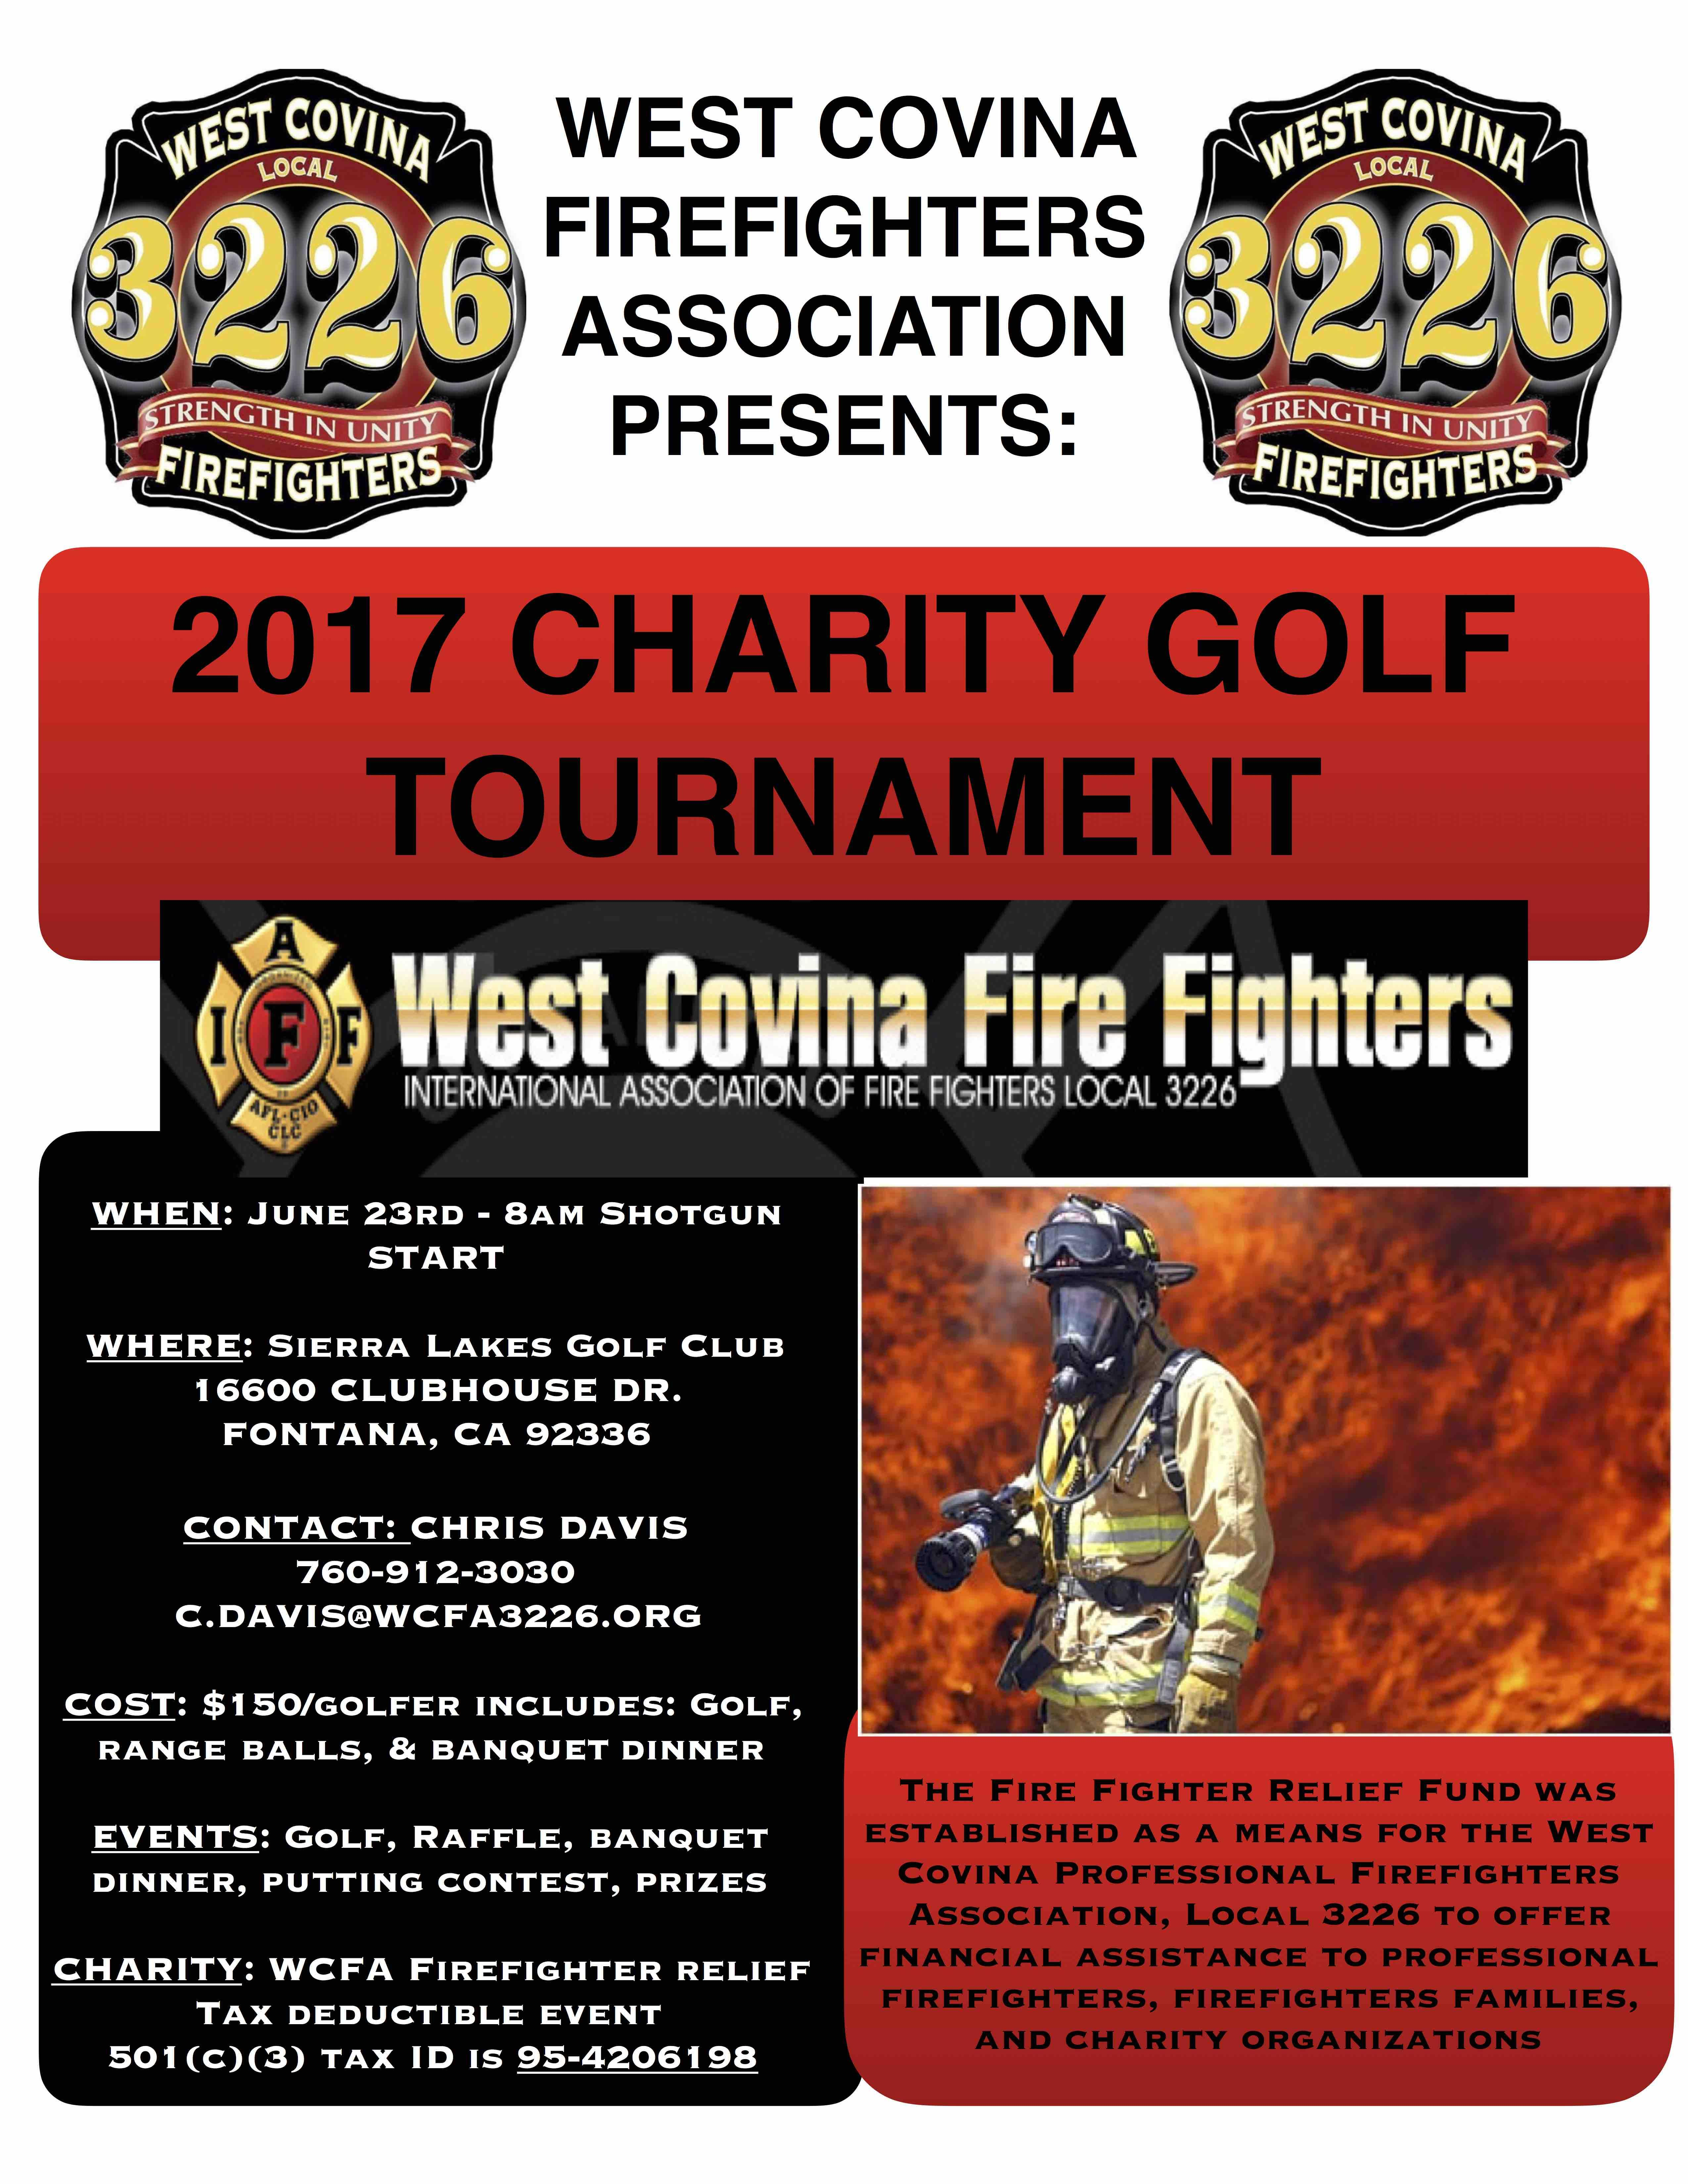 2017 West Covina Firefighters Charity Golf To